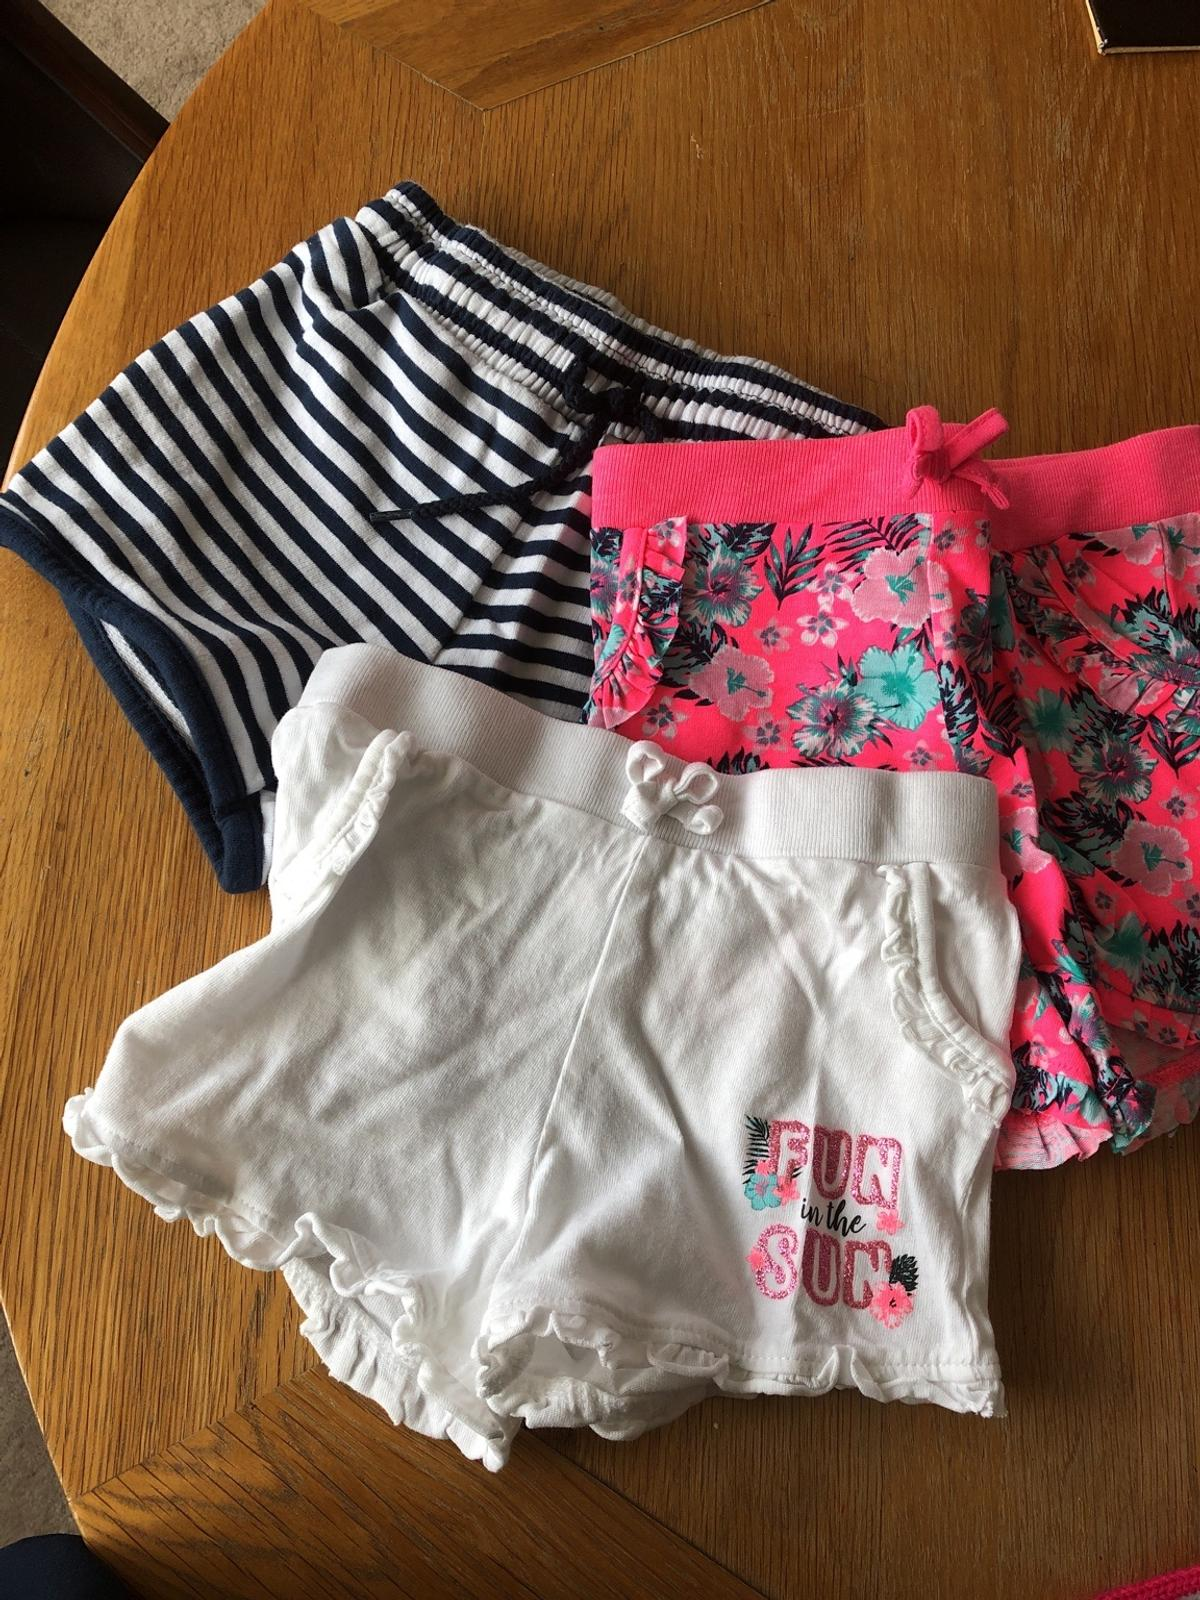 Size 4-5 girls shorts No offers please